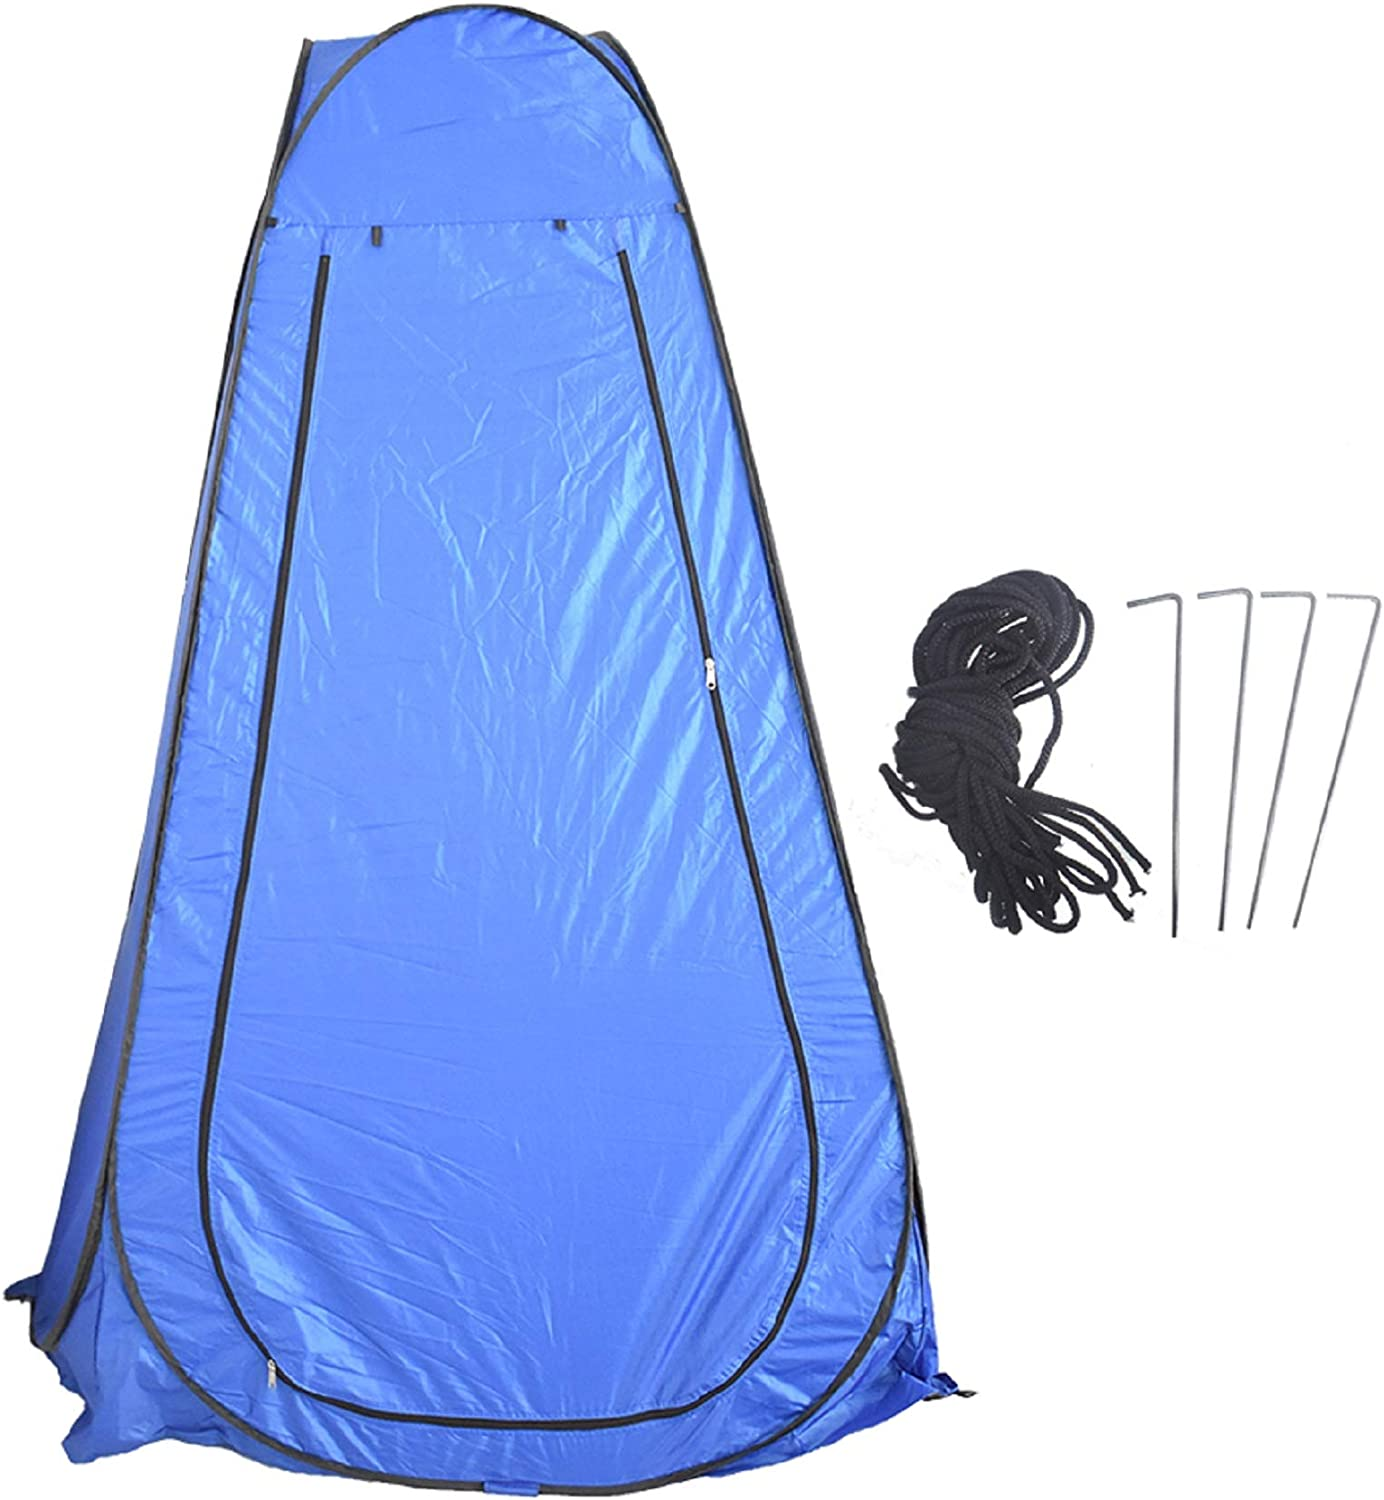 labworkauto Pop Up Privacy Max 73% Max 59% OFF OFF Tent Shower Portable Instant Outdoor